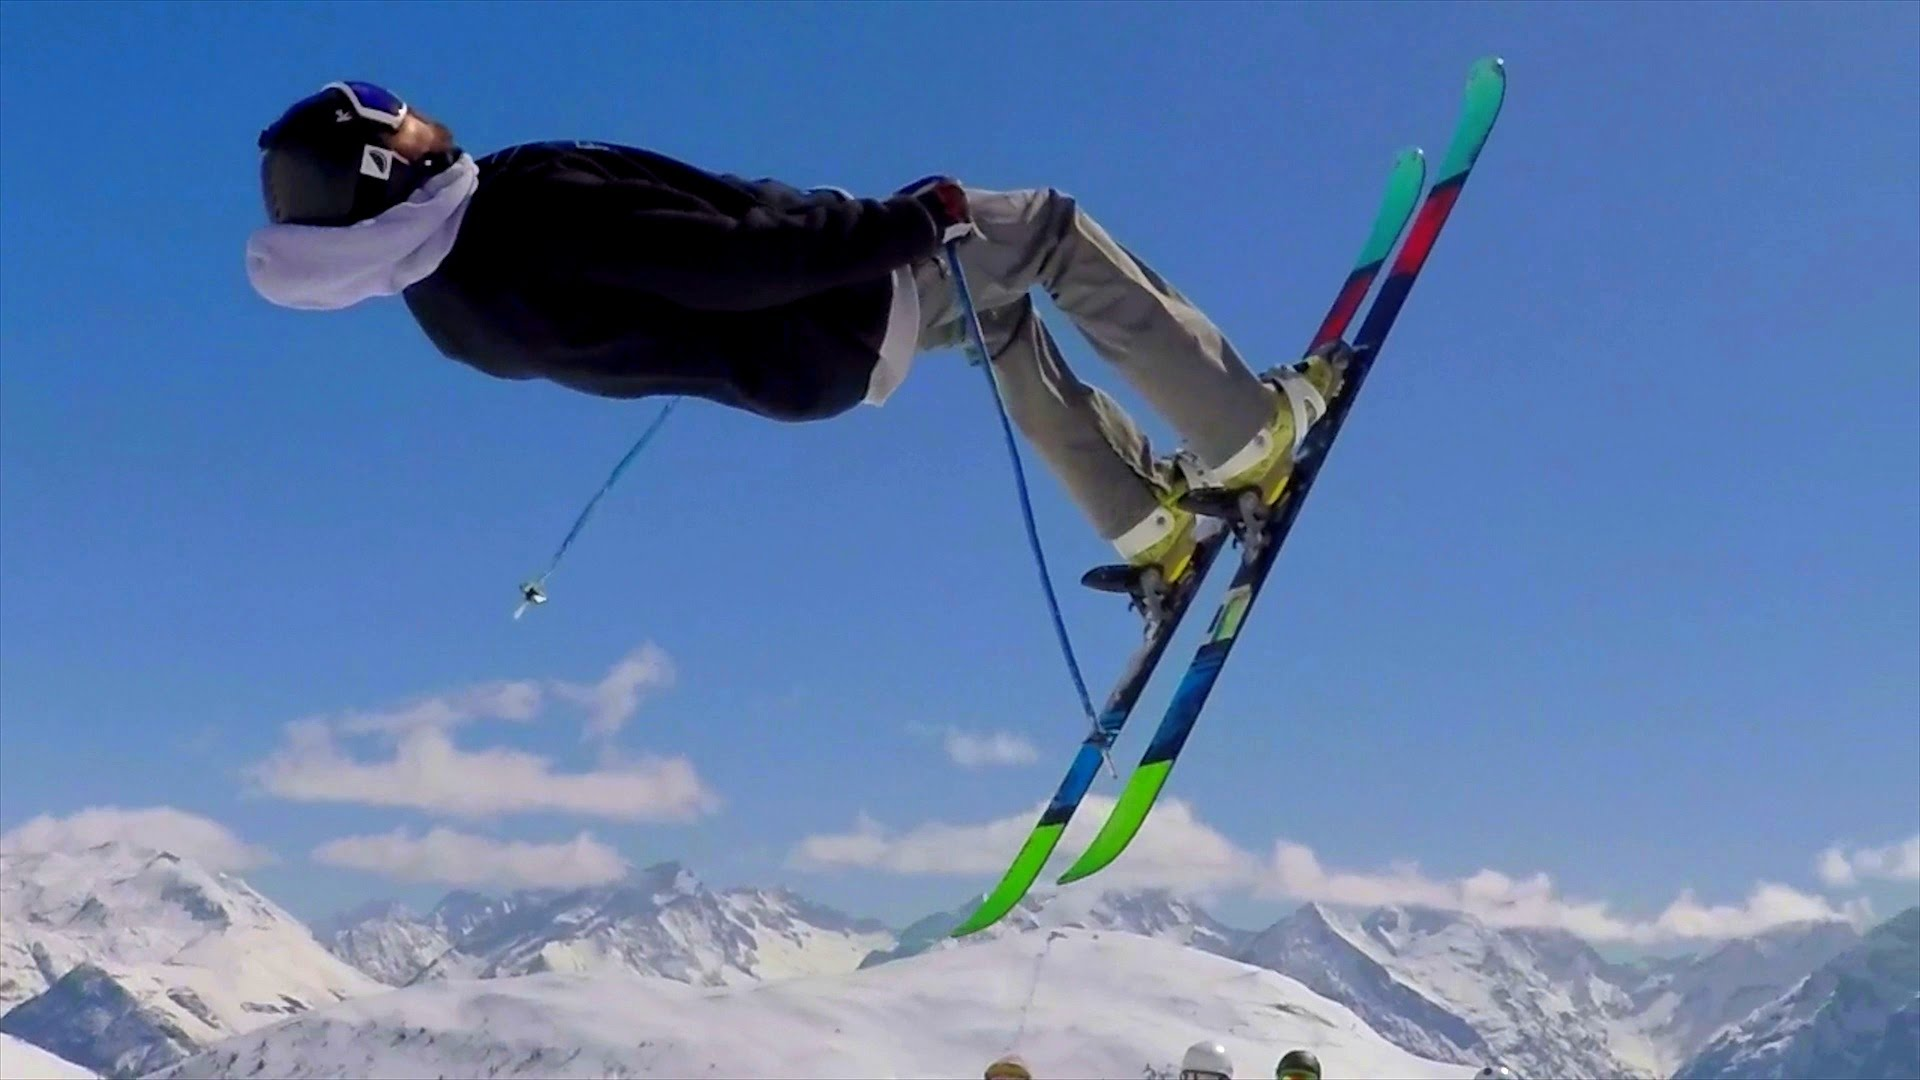 Freestyle: Skiing In The Alps - YouTube